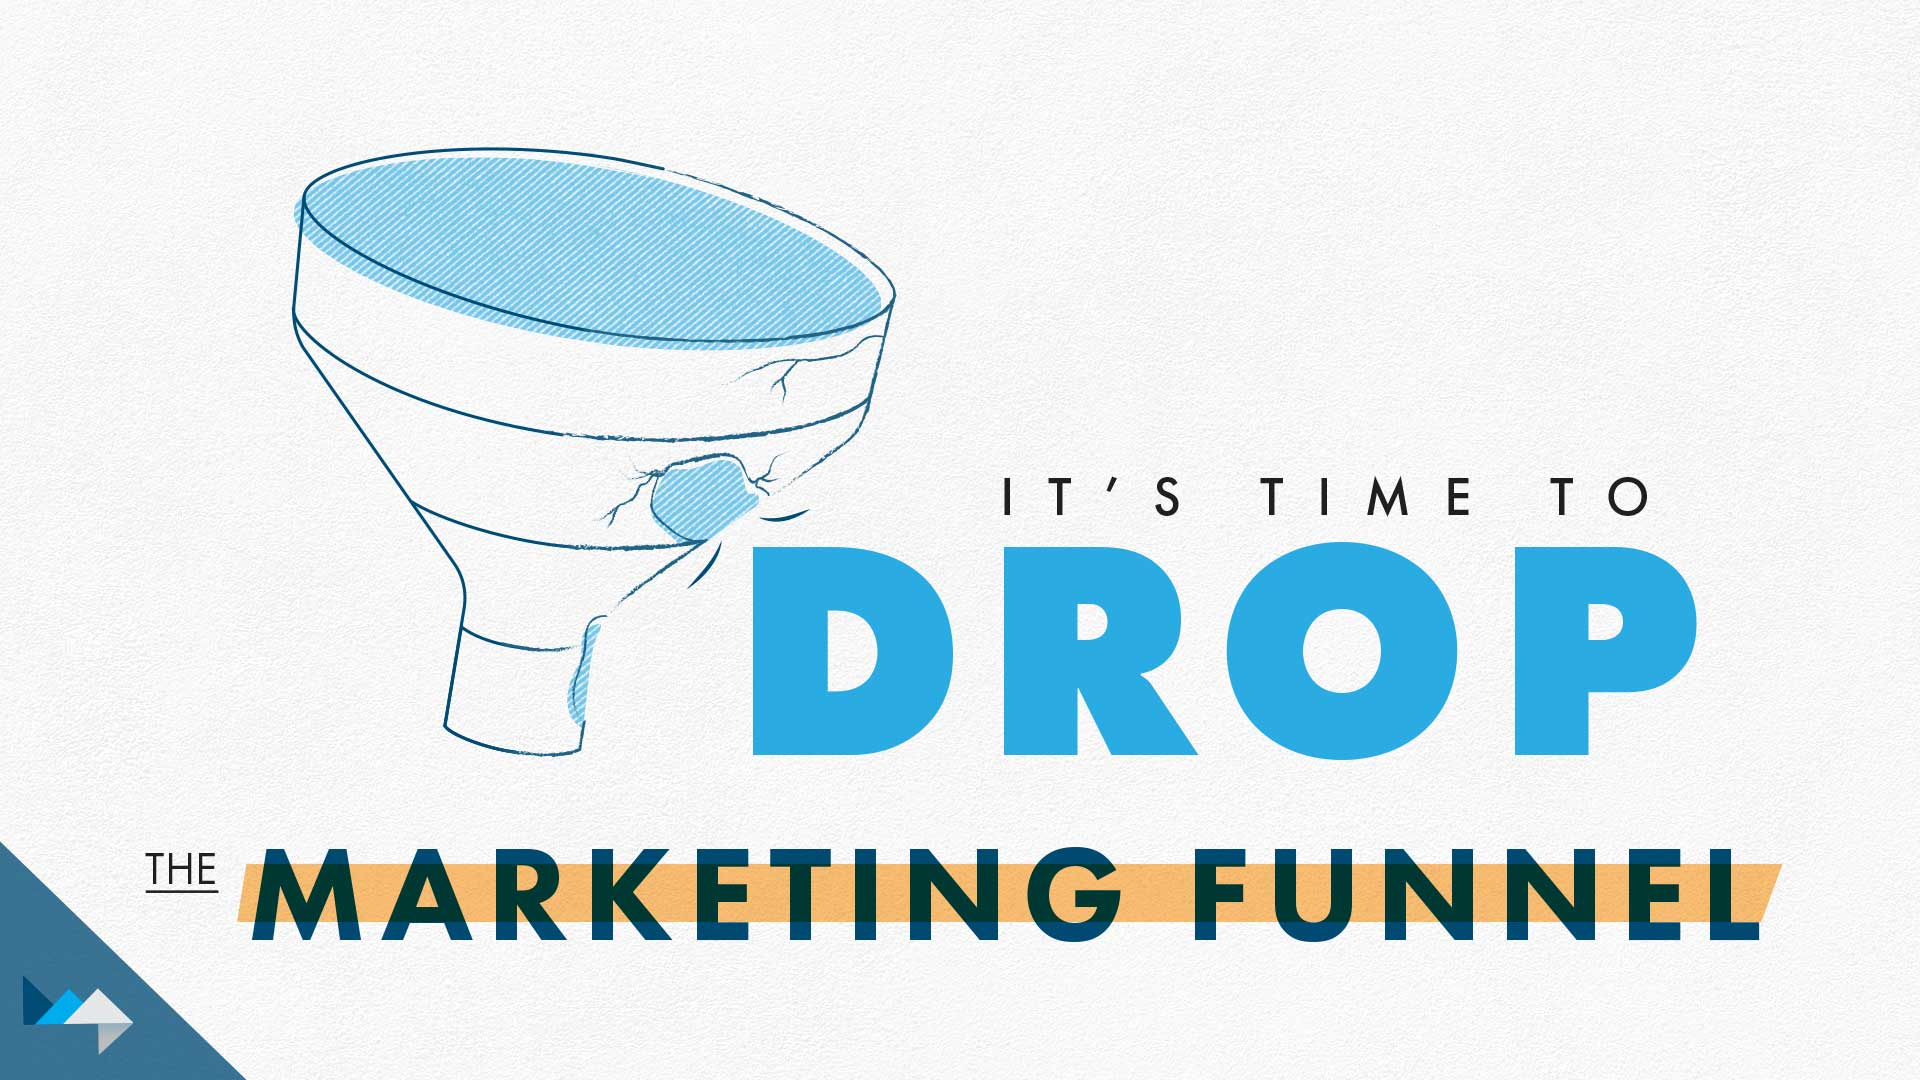 It's Time to Drop the Marketing Funnel